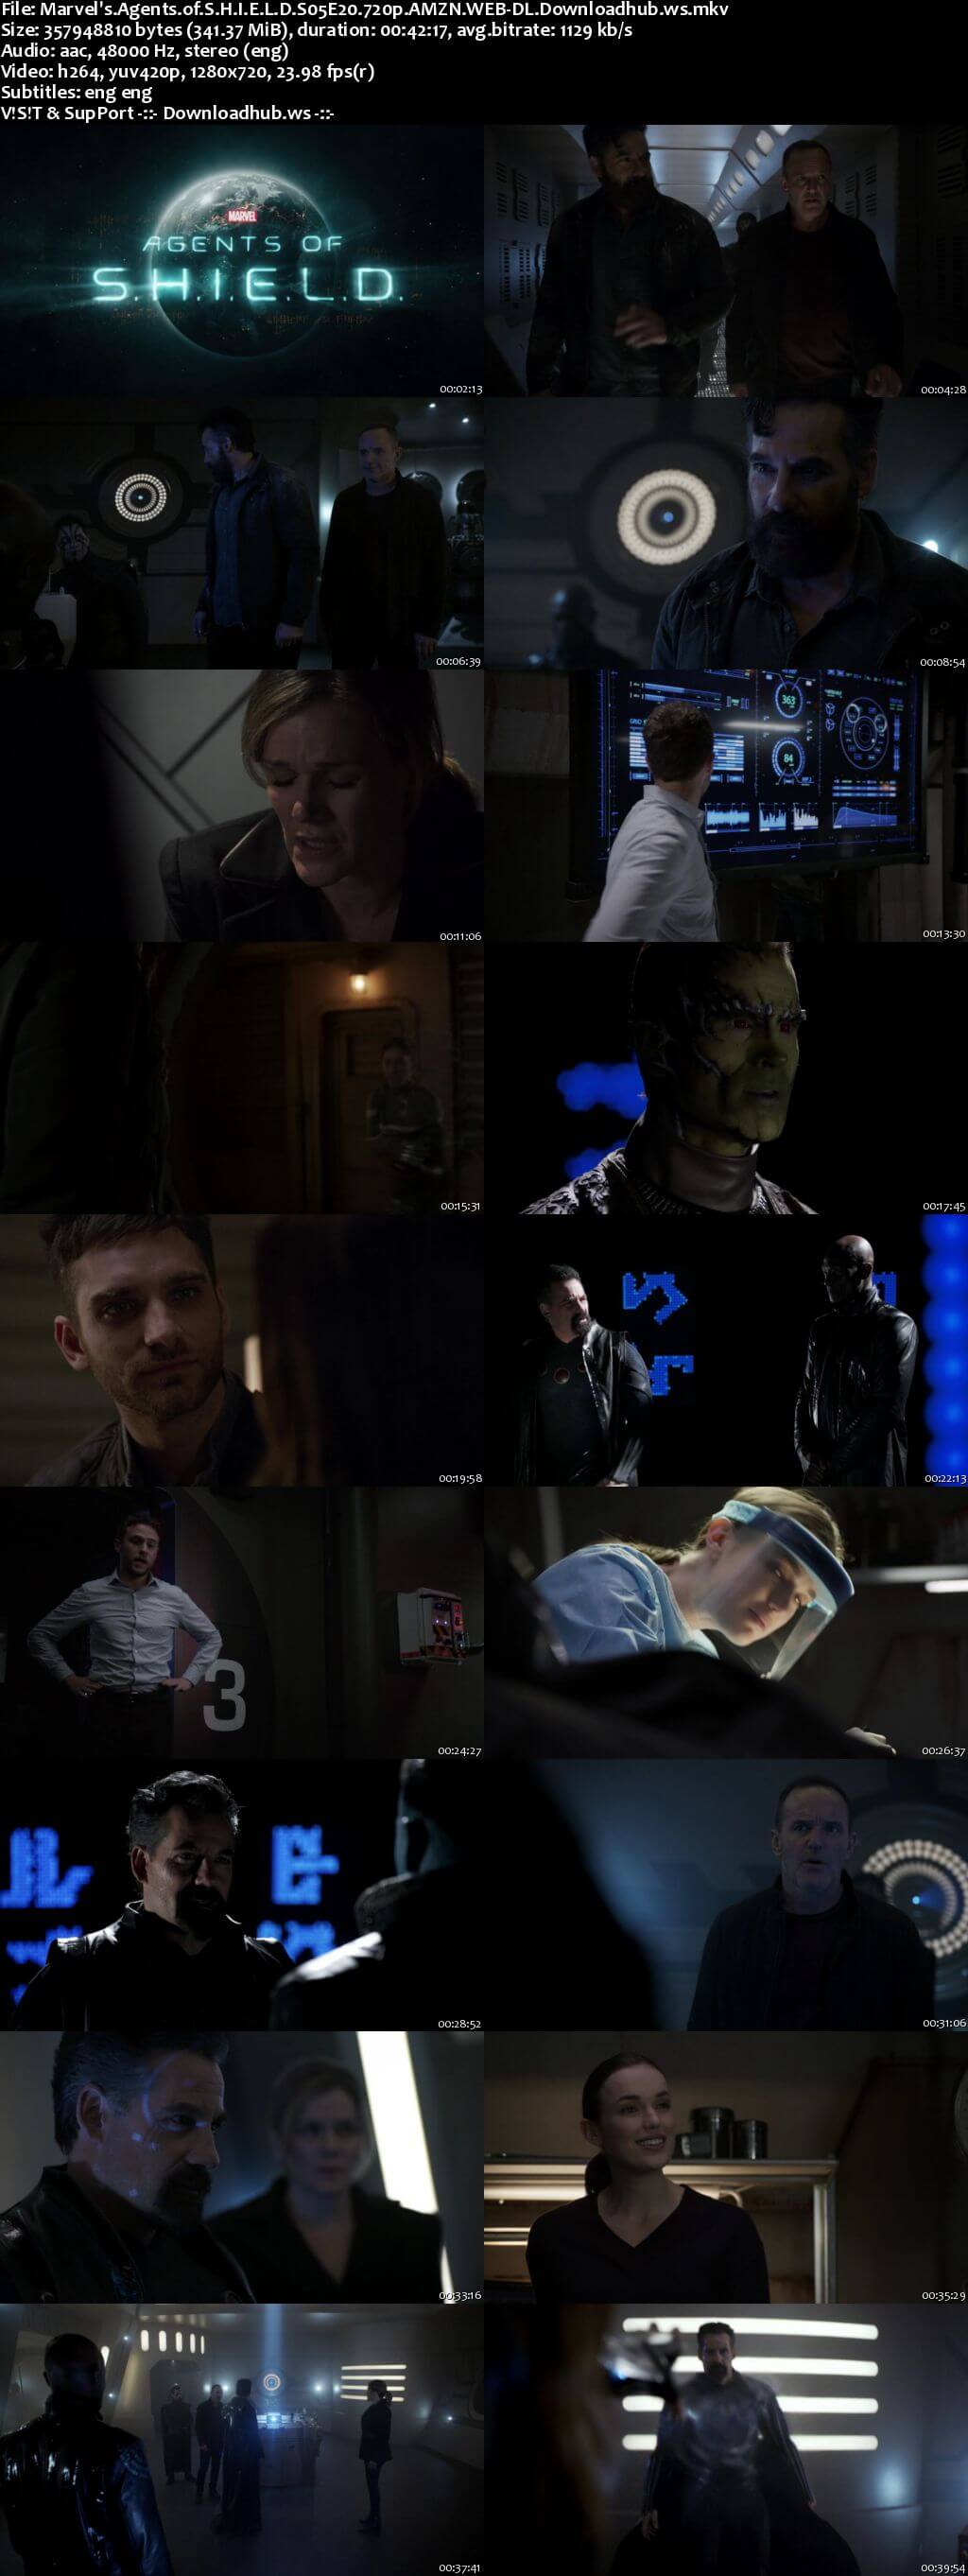 Marvels Agents of S.H.I.E.L.D S05E20 340MB Web-DL 720p x264 ESubs